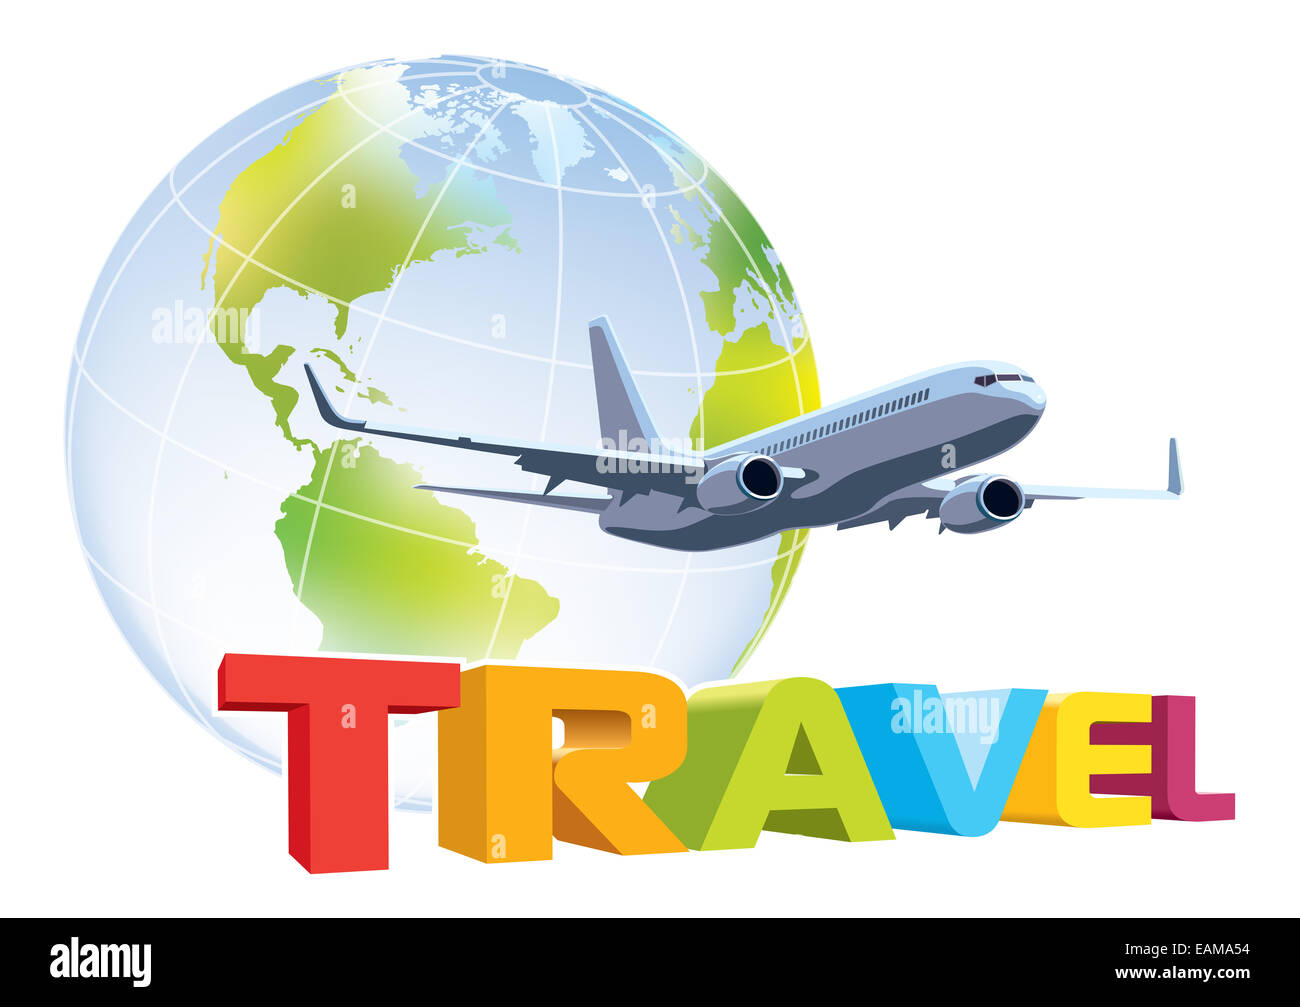 commercial airplane flying over word travel earth globe in the